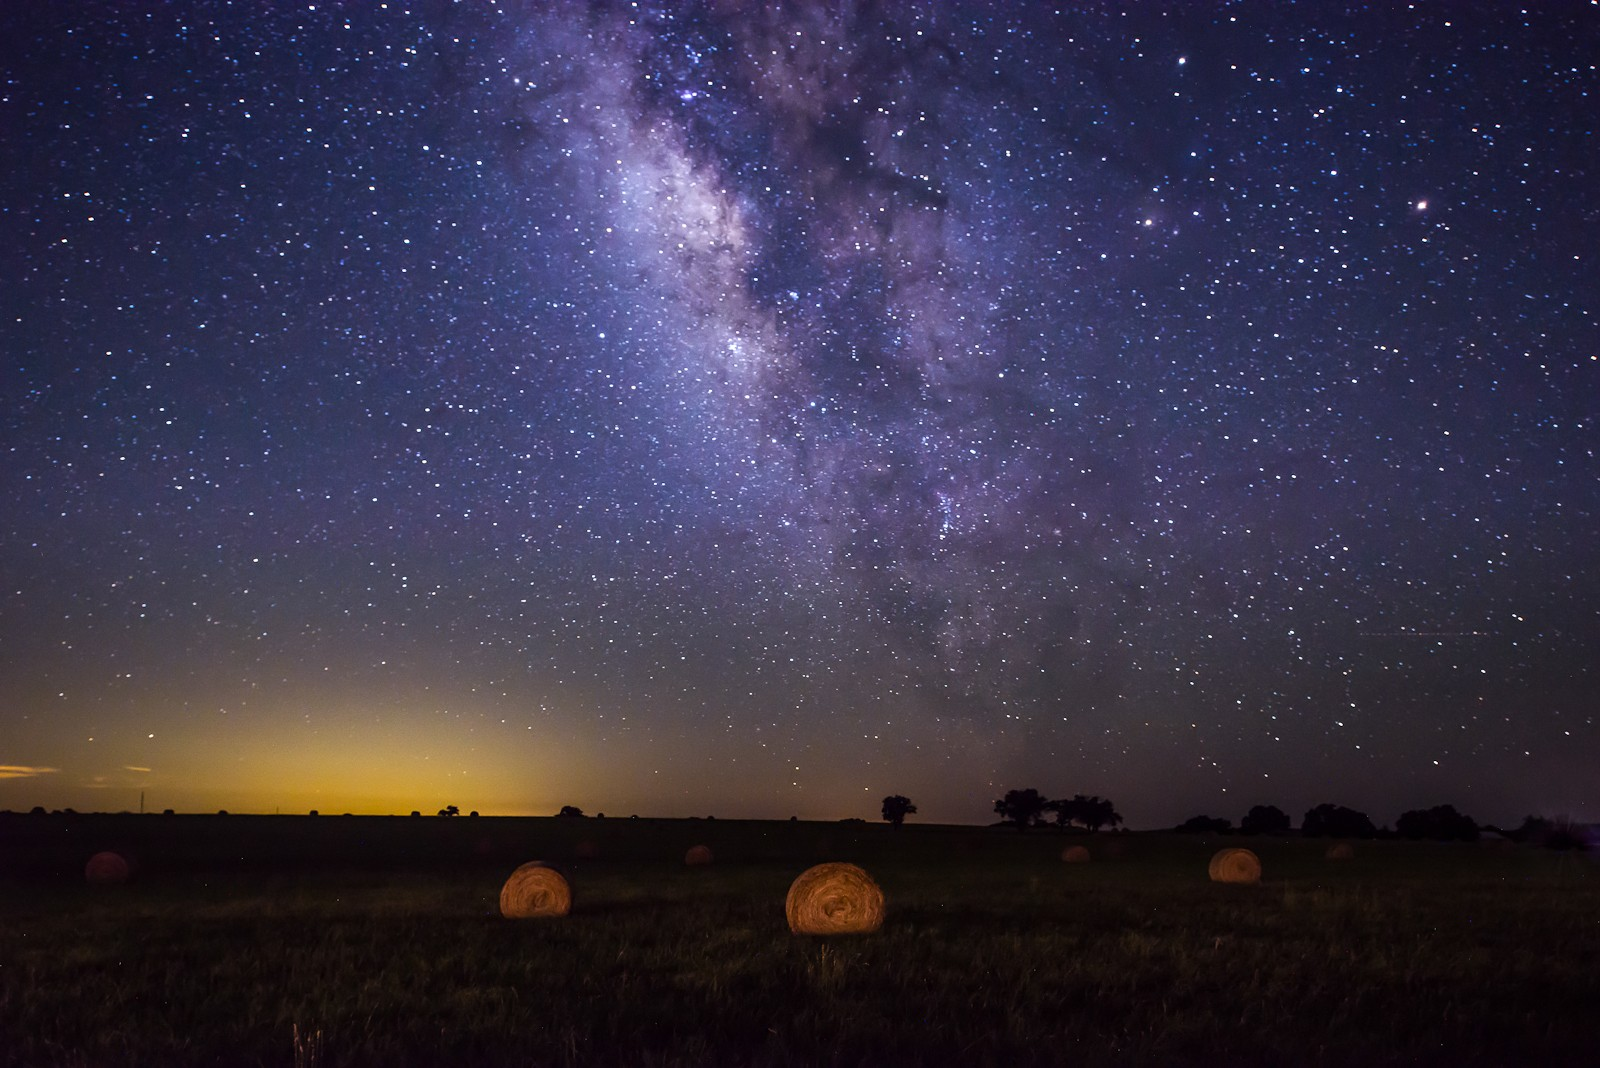 Young Pioneers set their sights on protecting the night skies